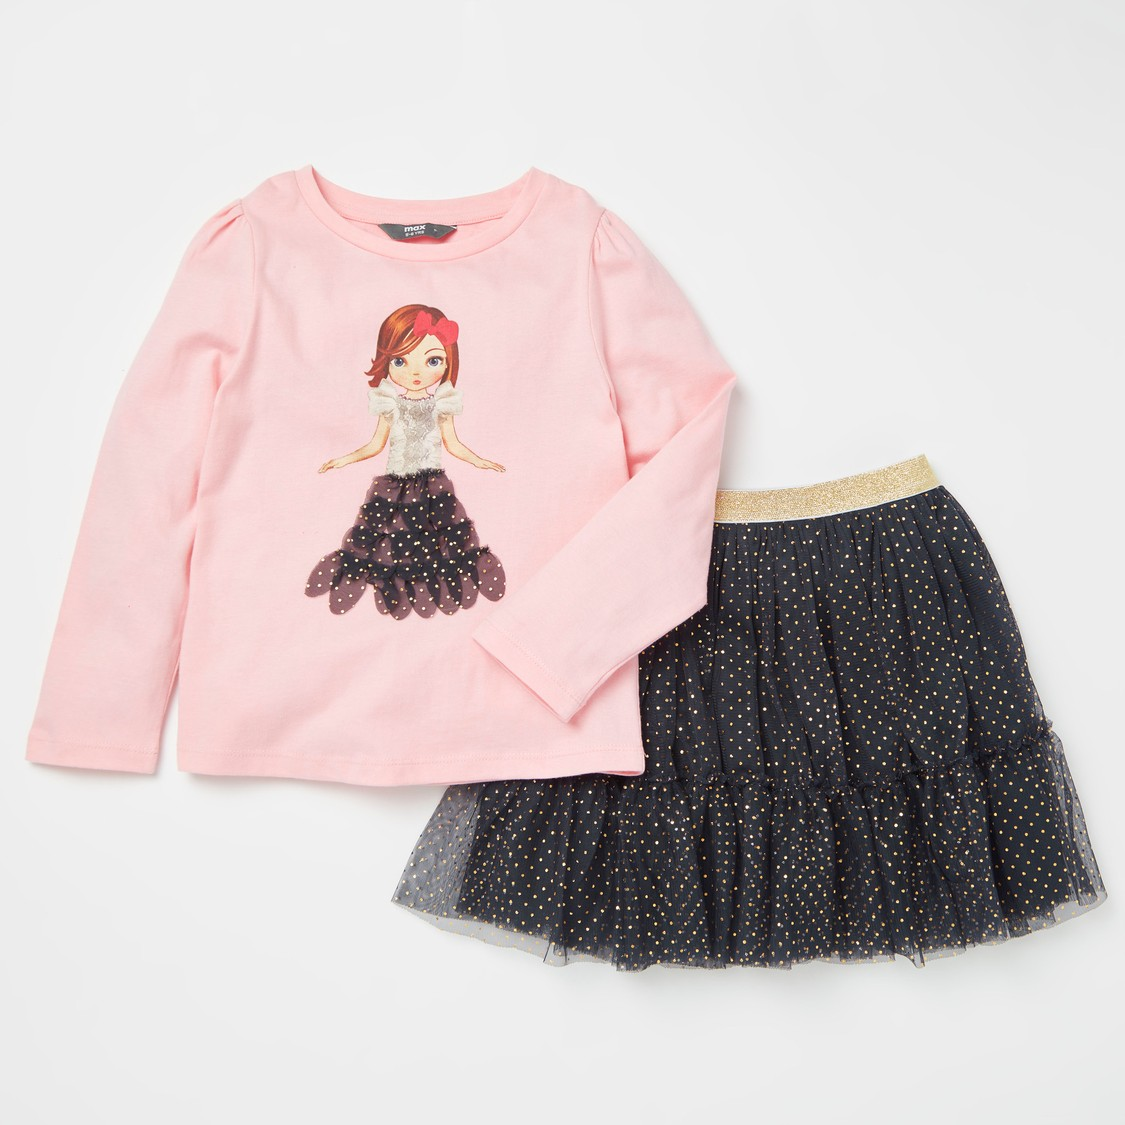 Applique Detail Long Sleeves T-shirt with All-Over Print Skirt